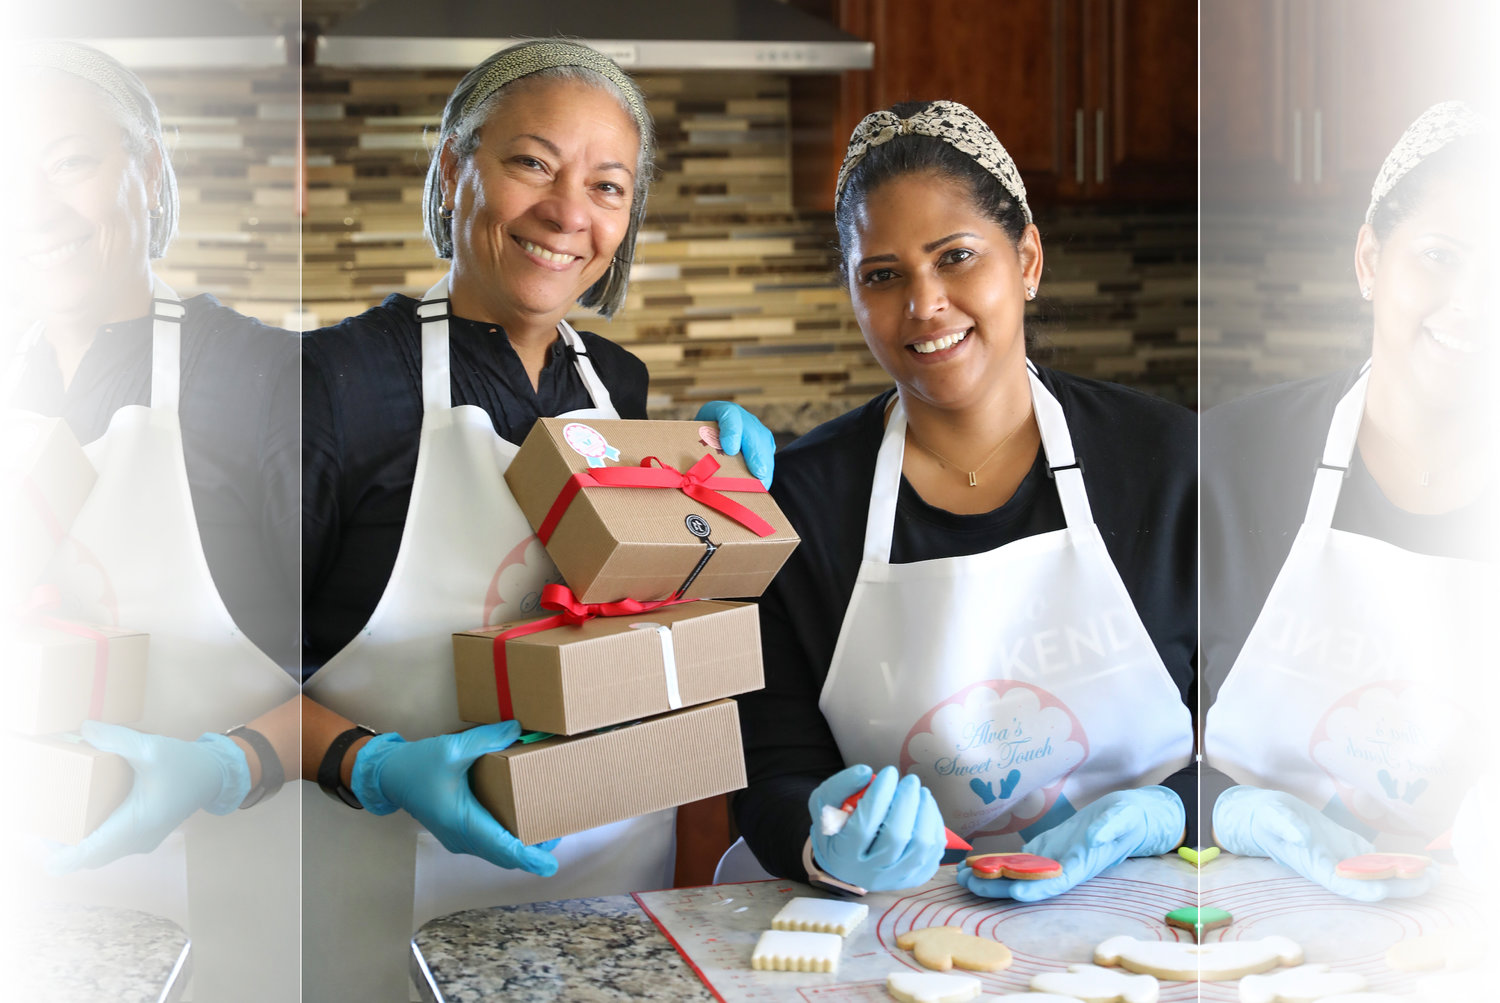 Alva (R), with the help of her sister-in-law Manuela (L), launched her decorative cookie business this past spring, which quickly found a wide customer base eager for her sweet, uplifting treats